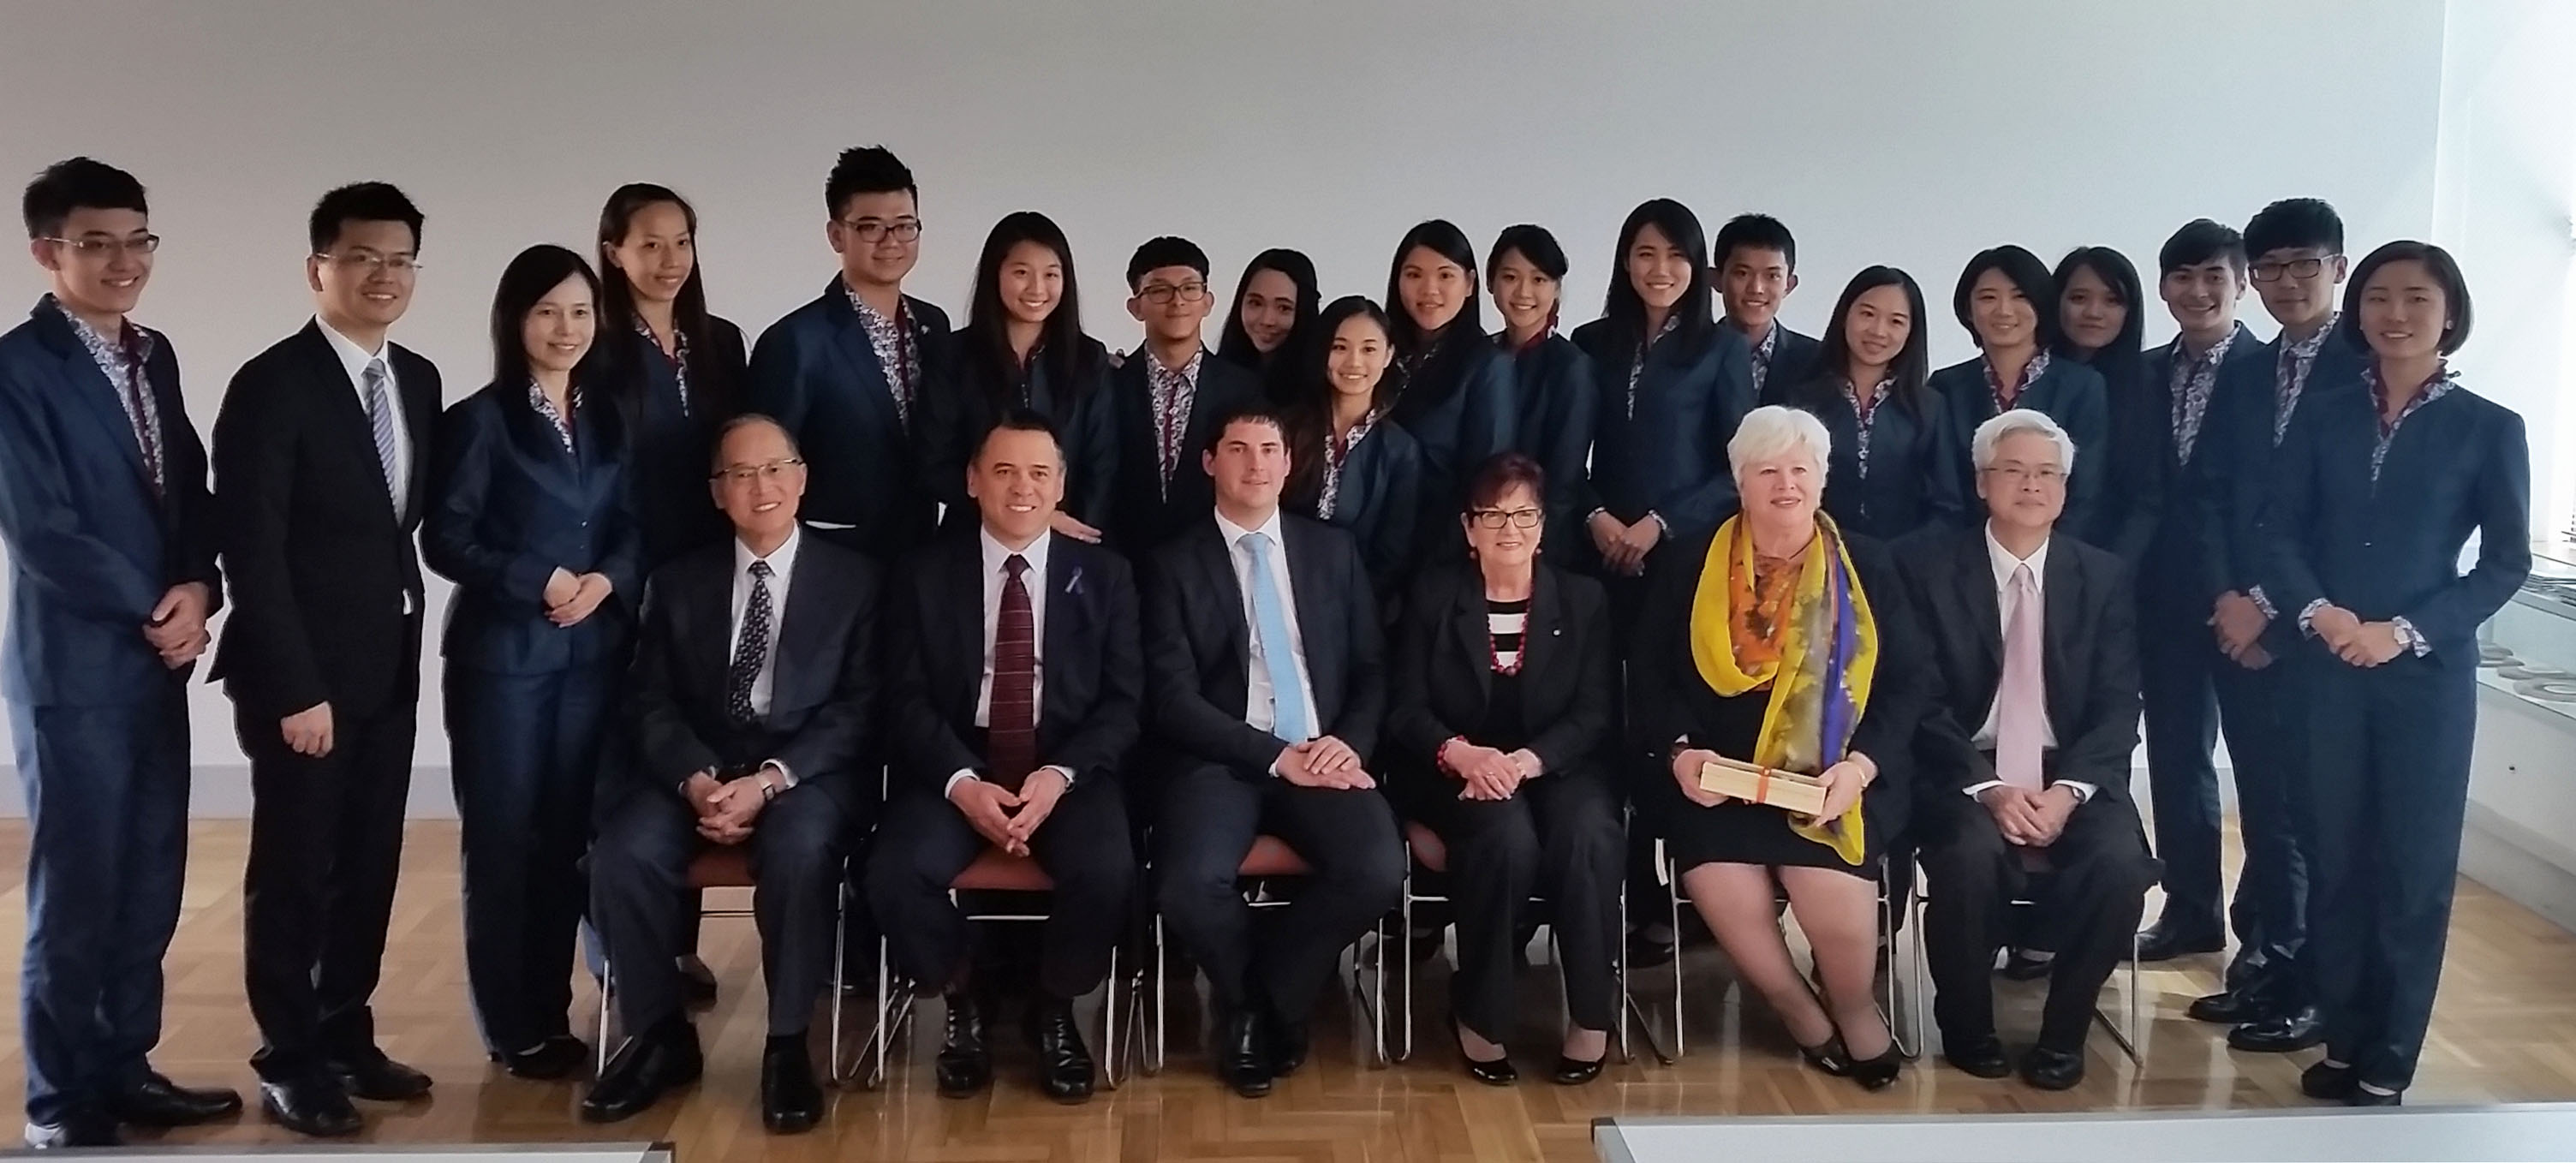 Group photo of Taiwanese Youth Ambassadors with members of the ACT Legislative Assembly, Canberra 15 September 2015.